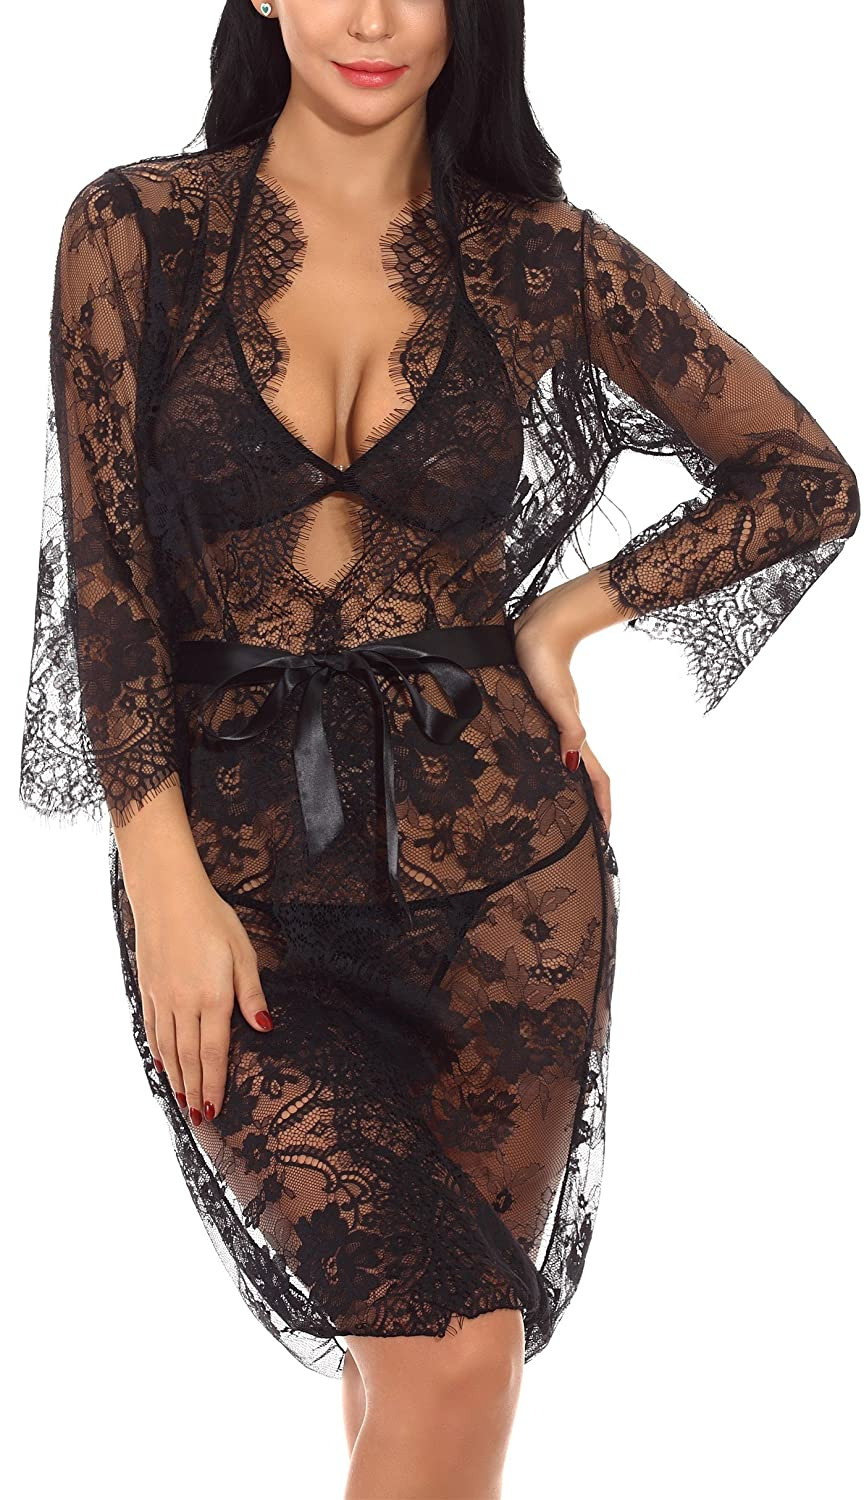 0c8fdf8996 Amazon.com  XYlove Women s Sexy Lace Long Robe Lingerie Set(4 Pieces)   Clothing